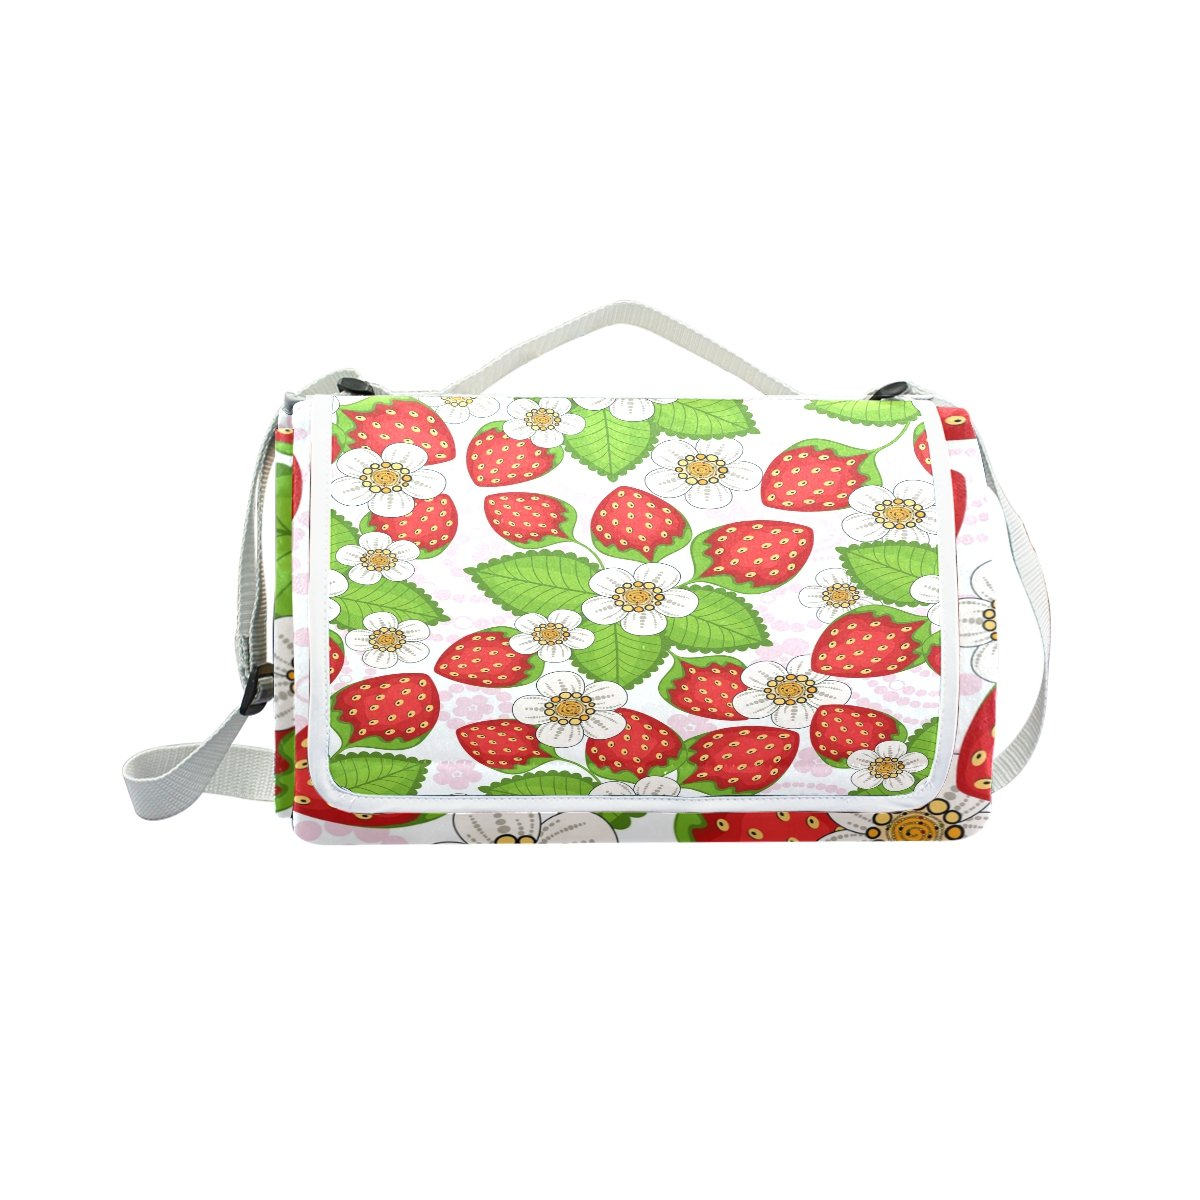 My Little Nest Outdoor Camping Picnic Beach Blanket Mat Floral Strawberries Lightweight Portable Folding Travel Pad 57'' x 59''